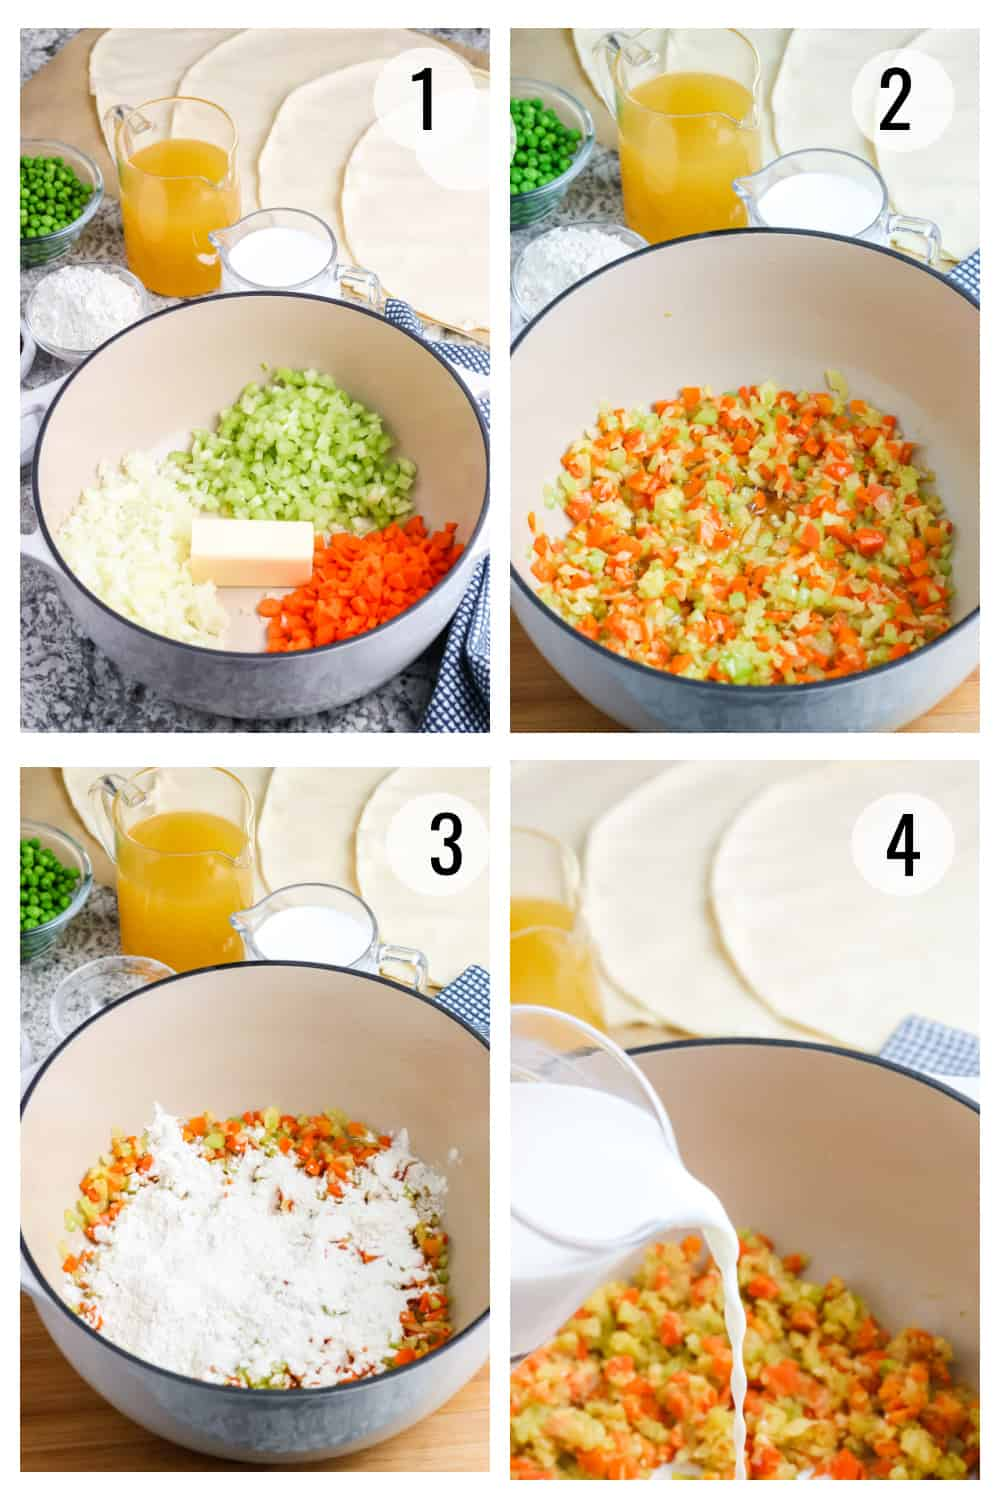 Numbered collage image showing celery, carrots, onions, butter, flour and milk mixed together to make chicken pot pie filling.